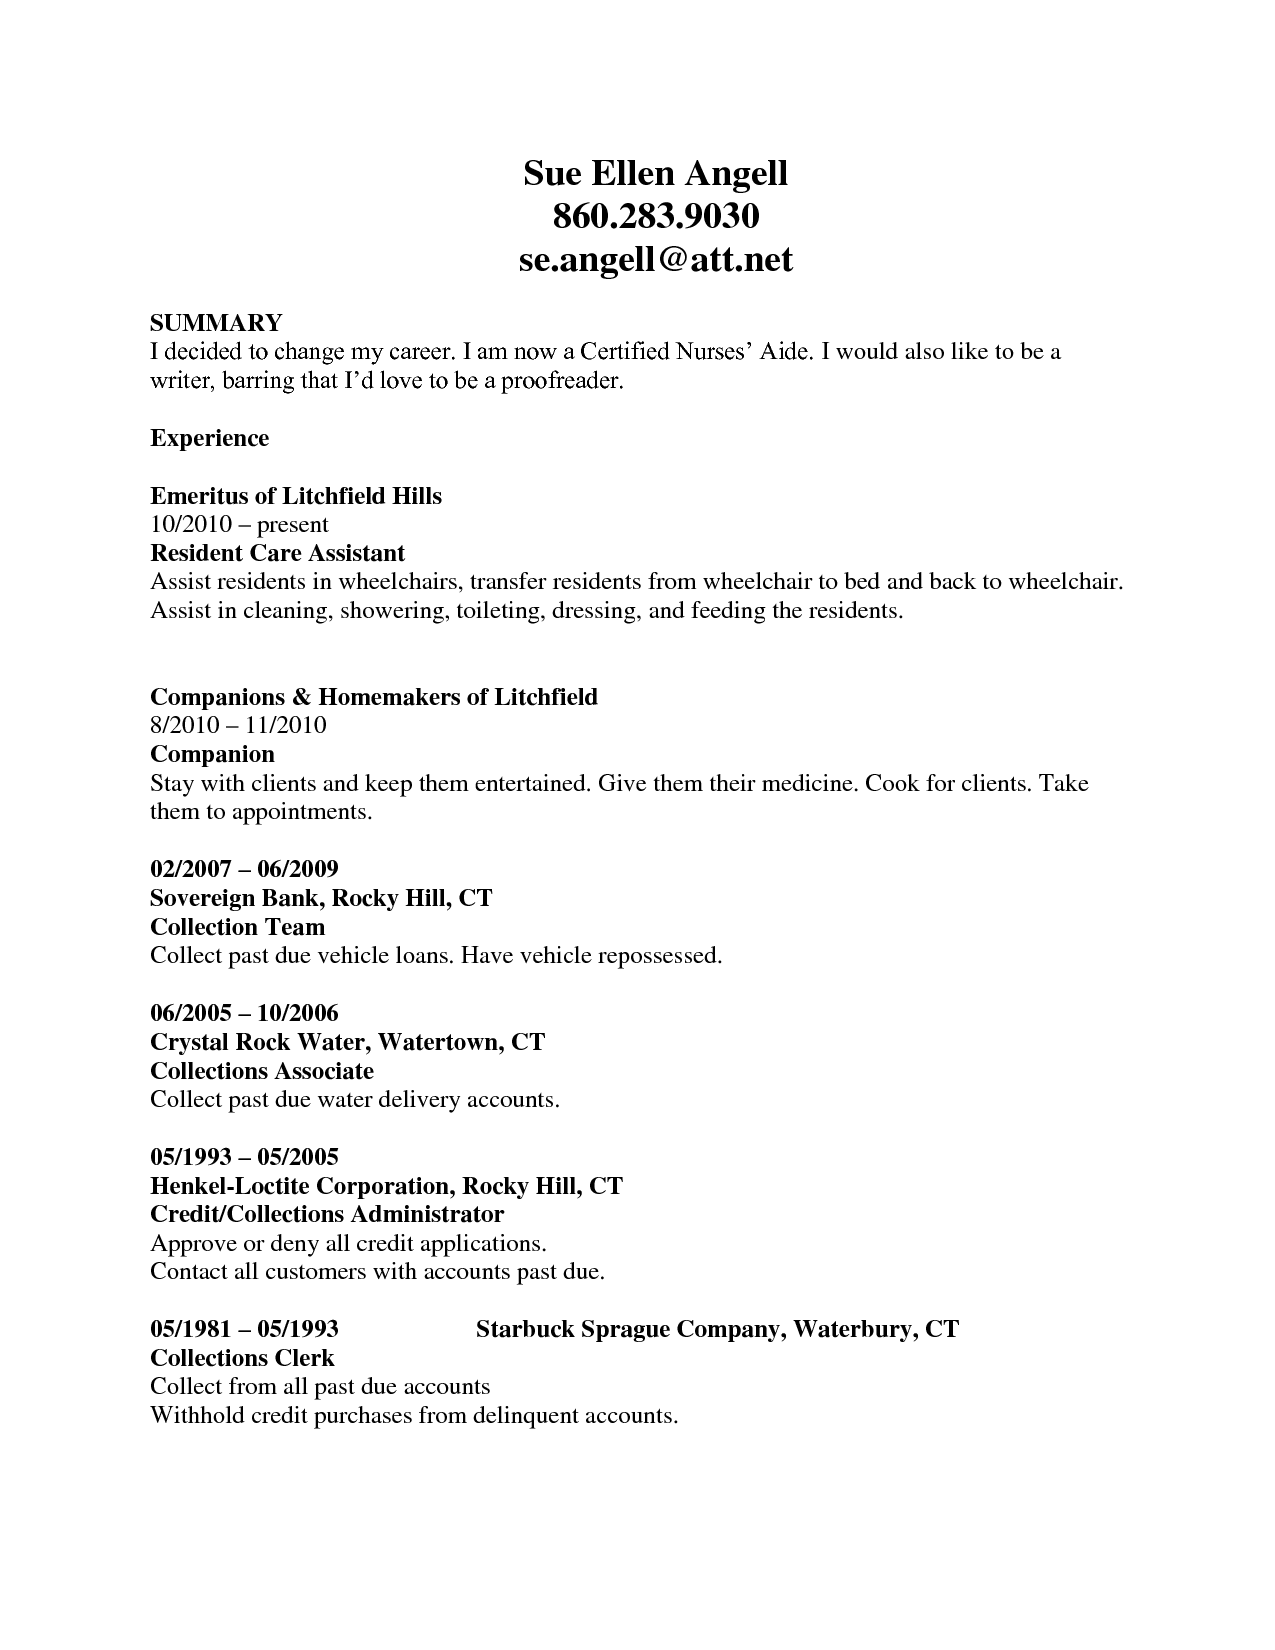 new cna resume - Inclusion Assistant Sample Resume